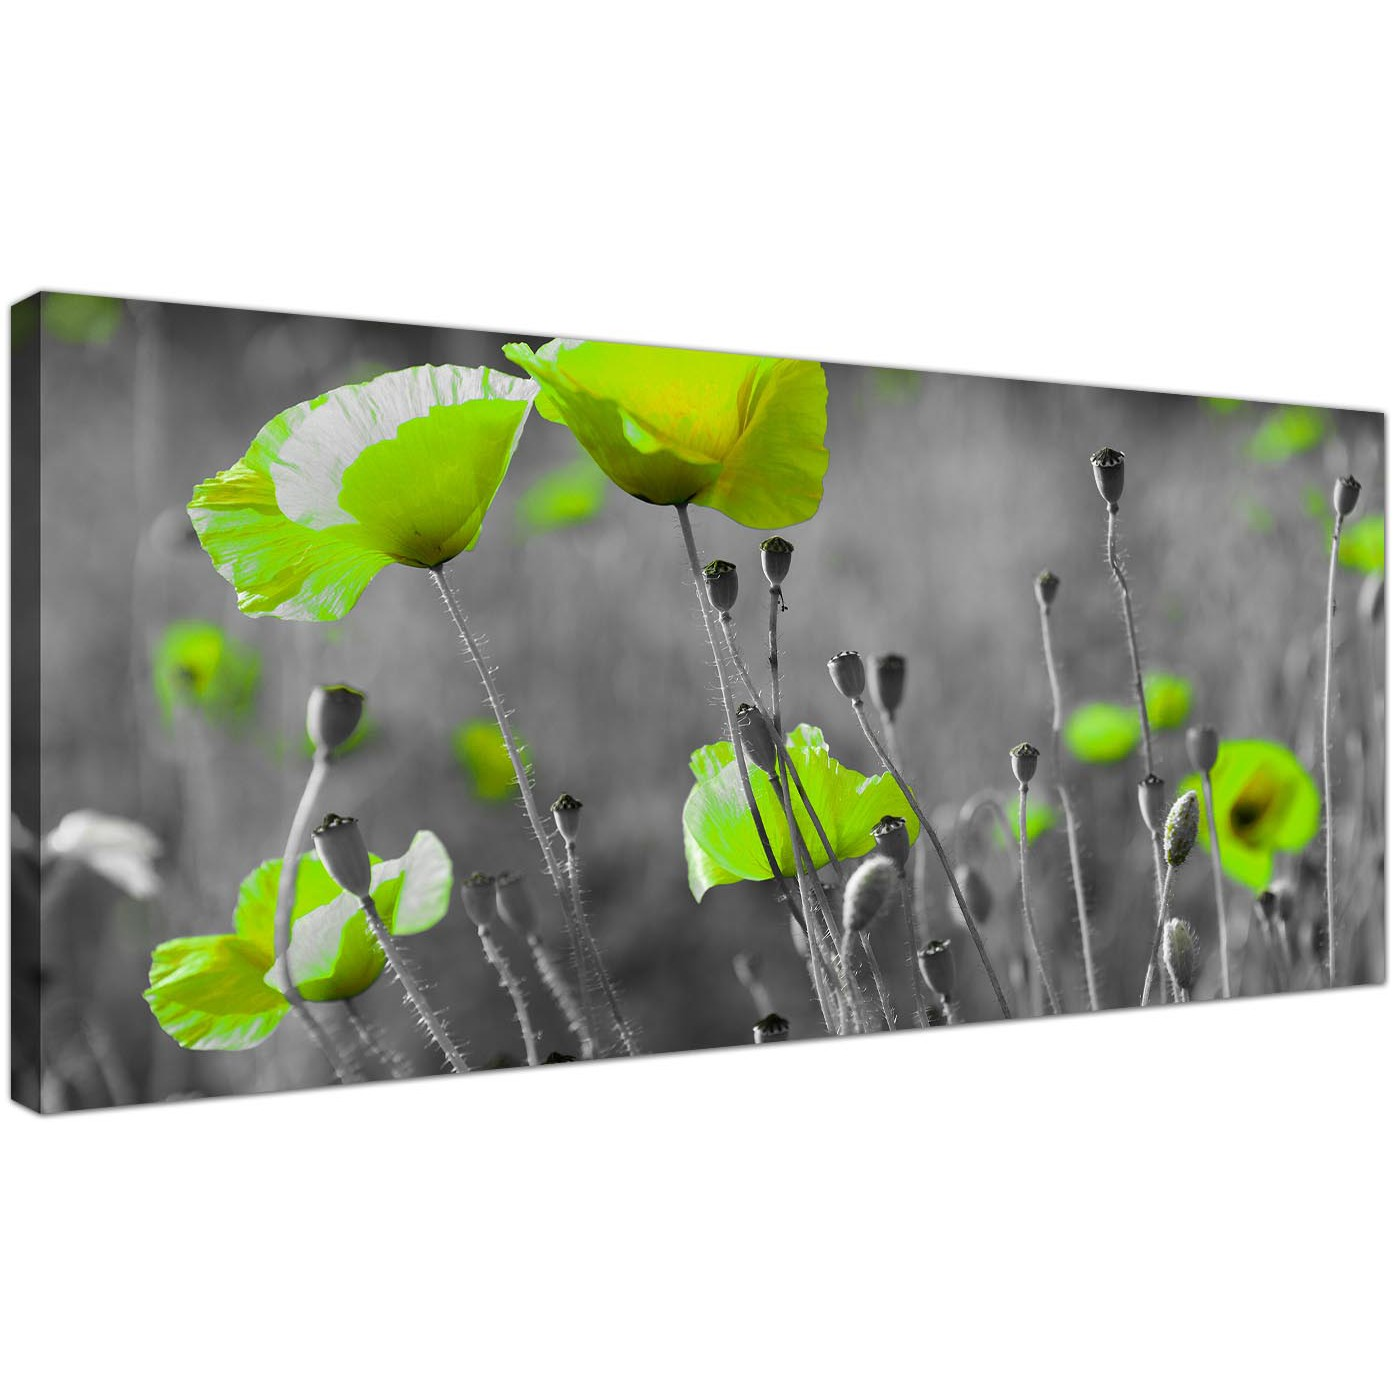 Wall Art Canvas Prints Uk